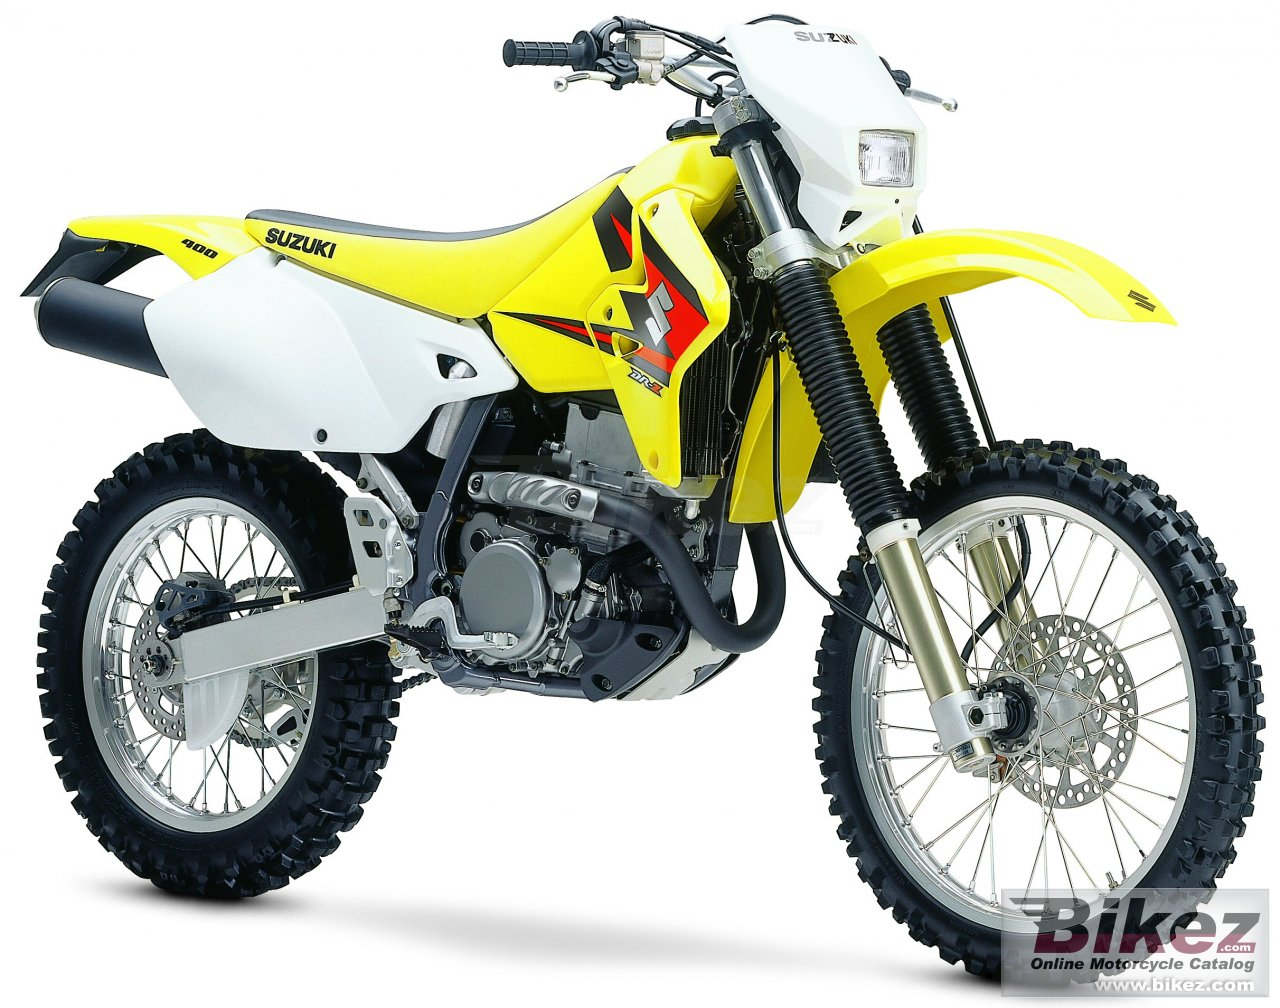 Big Suzuki dr-z 400 e picture and wallpaper from Bikez.com